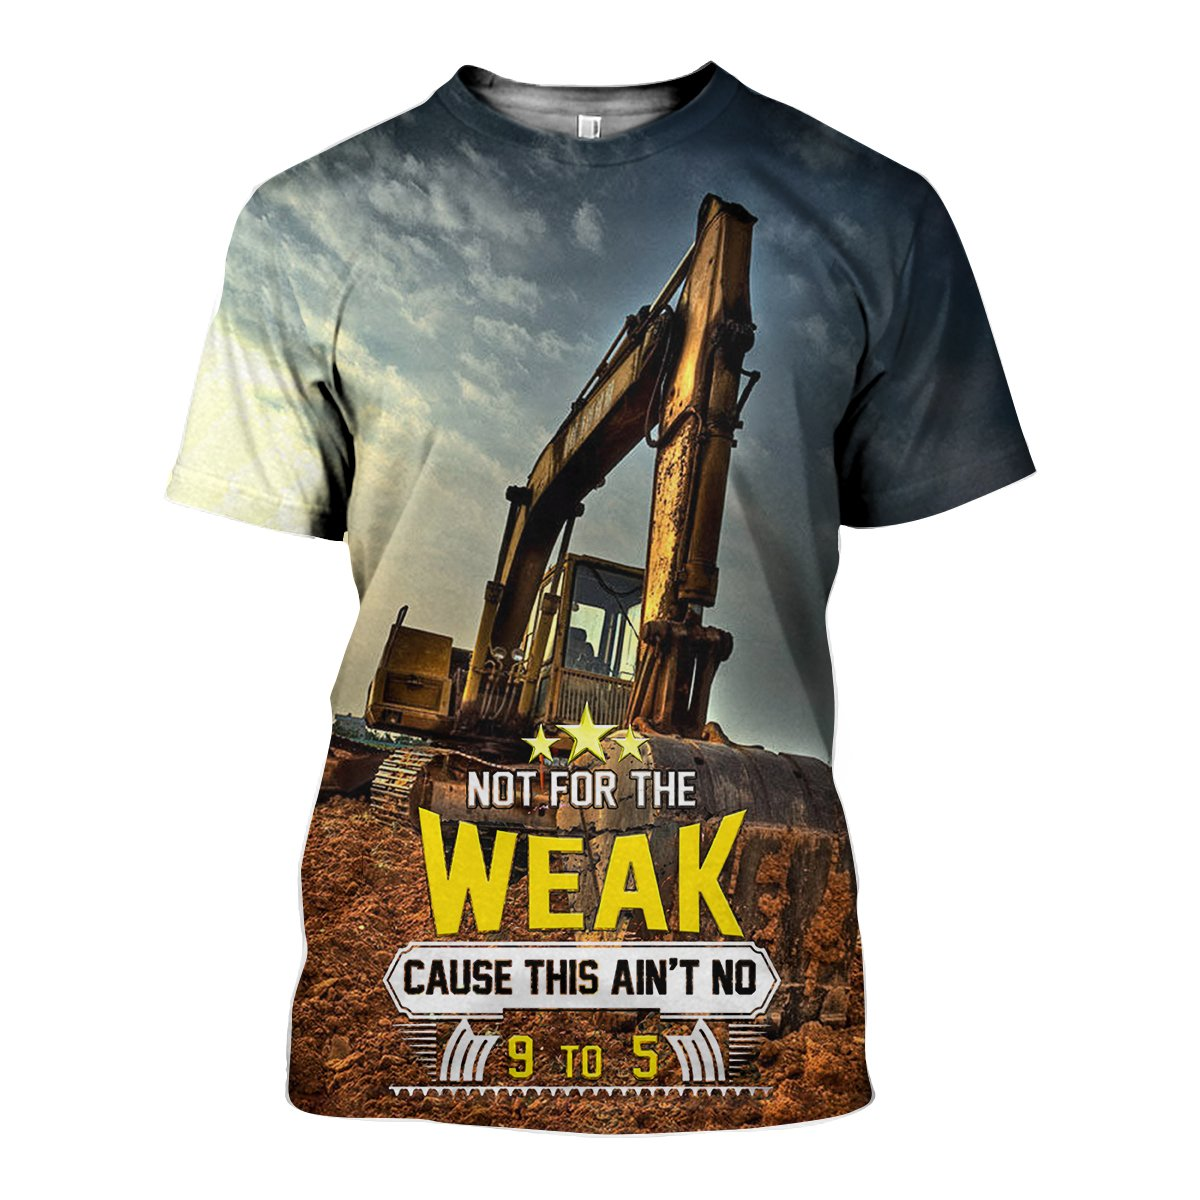 3D All Over Printed Excavator Shirts and Shorts